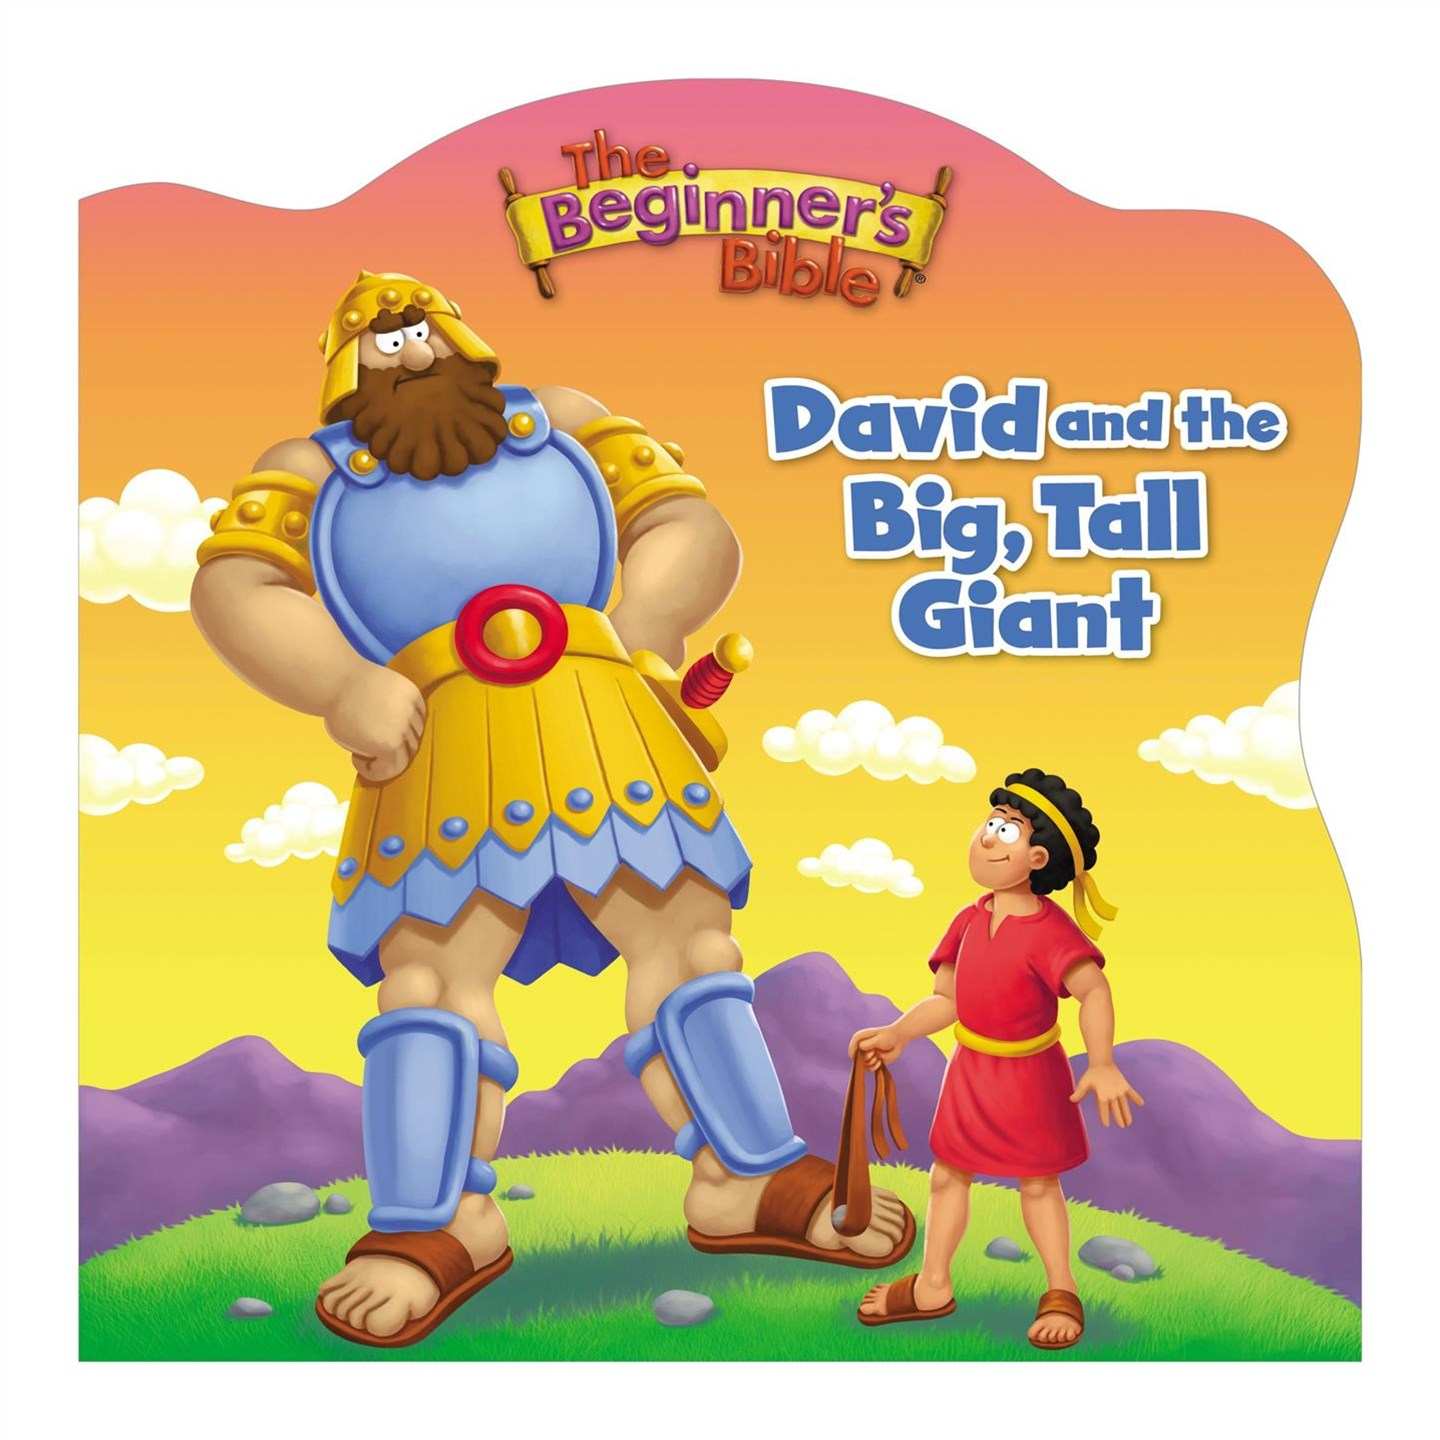 Beginners Bible David and the Big Tall Giant